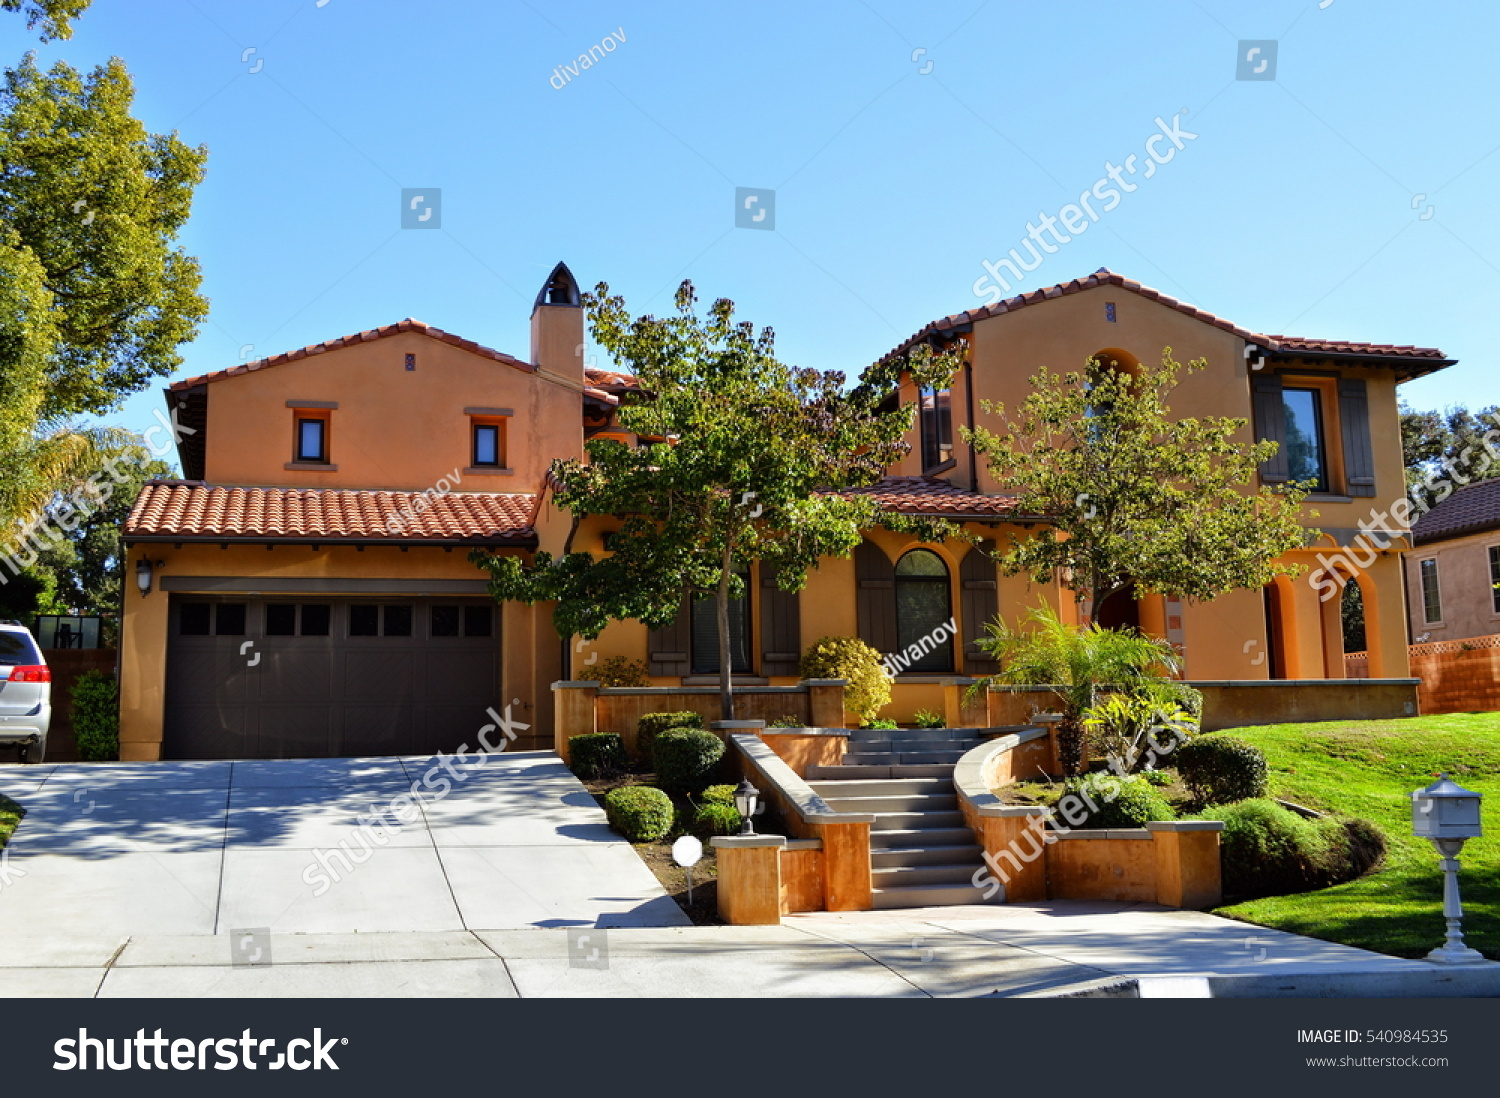 Luxury Custom Made Houses Mansions Nicely Stock Photo 540984535